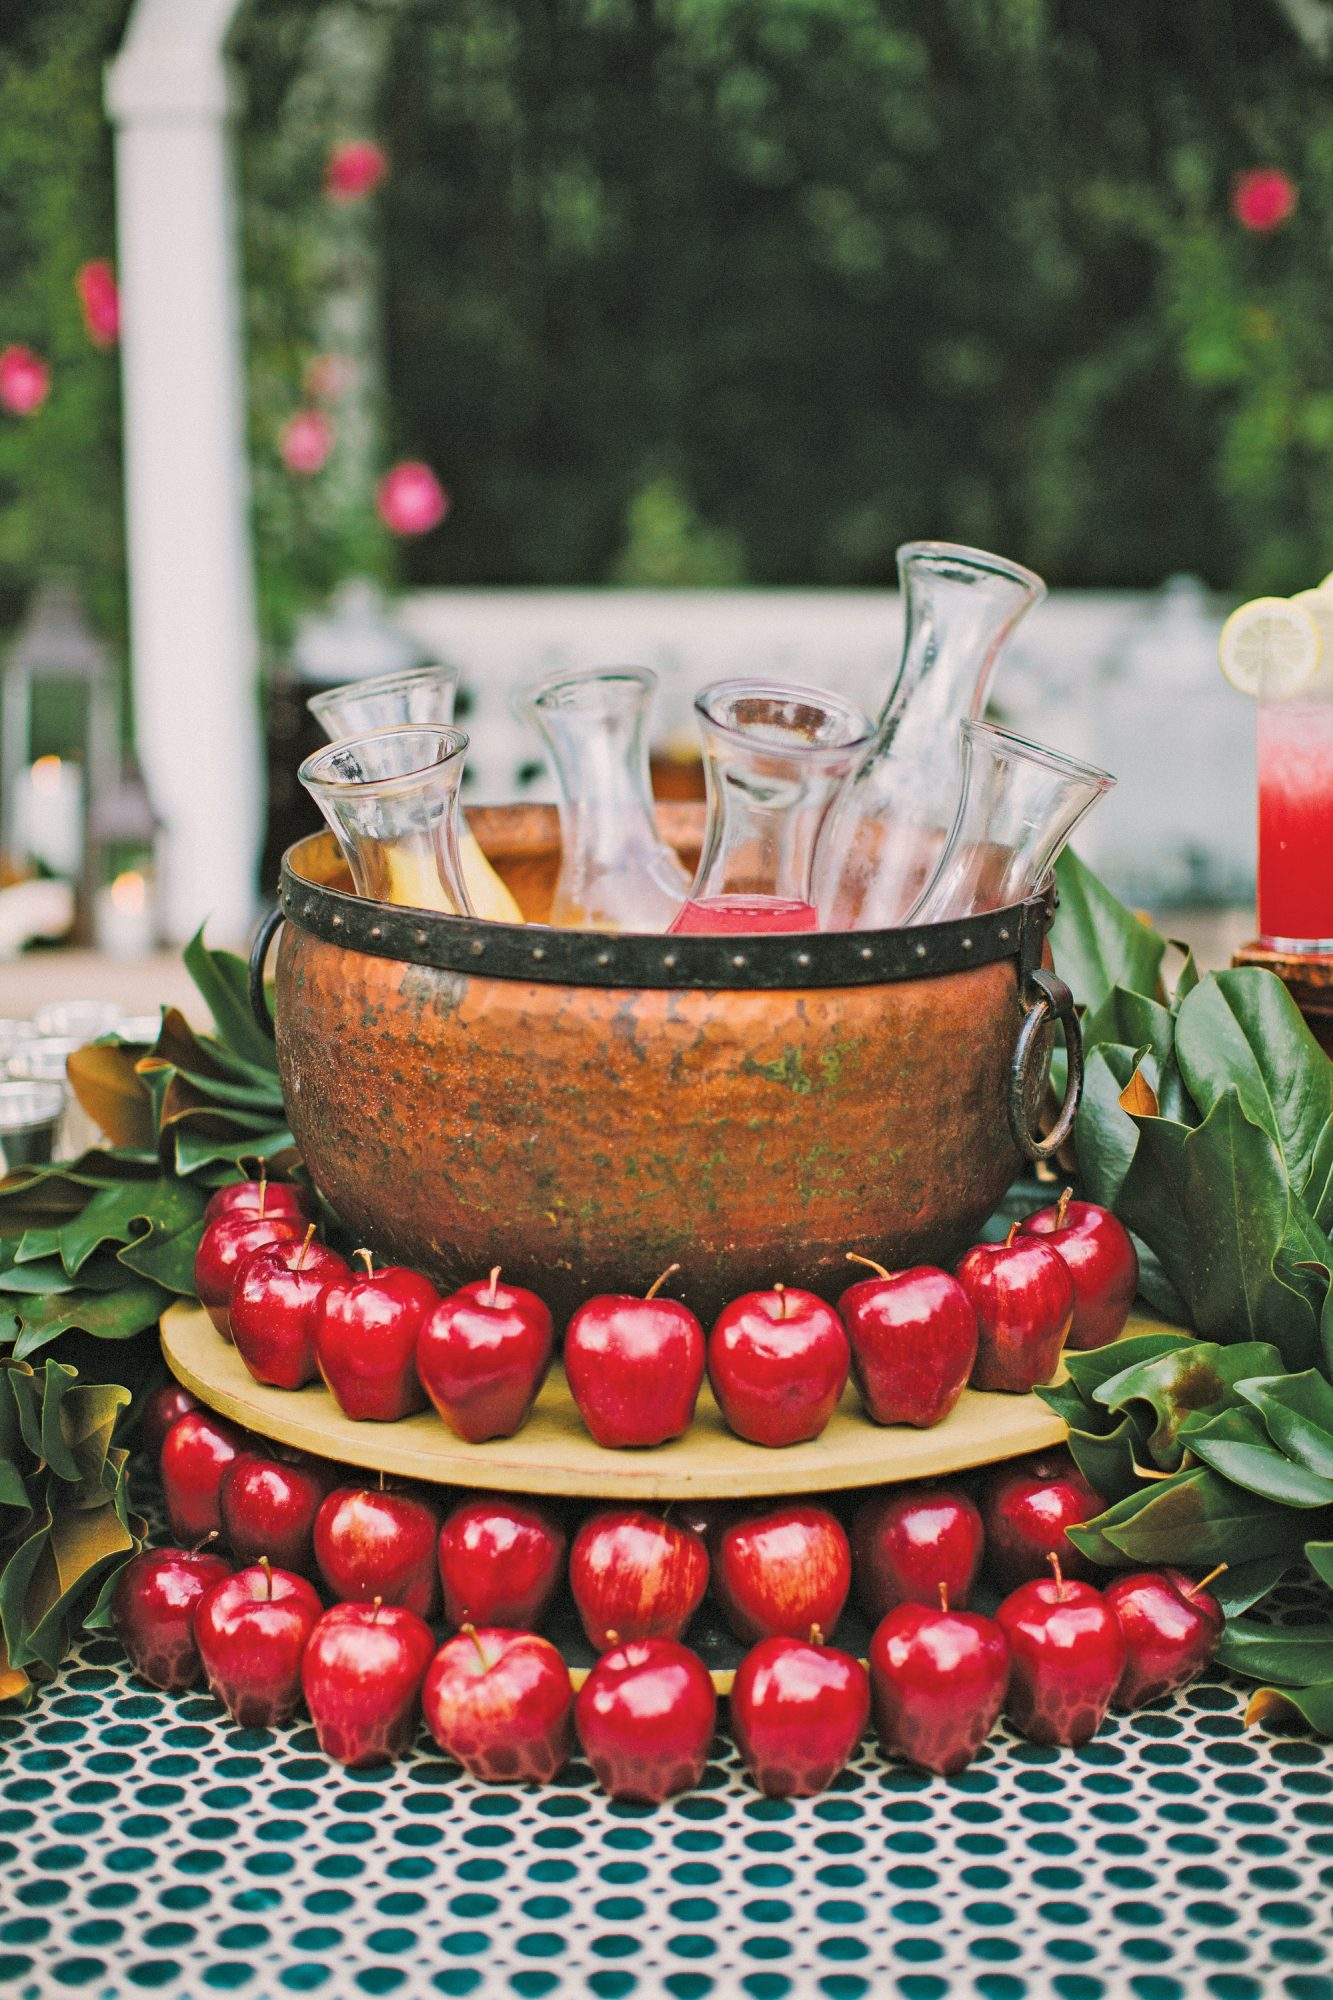 Apples Fall Wedding